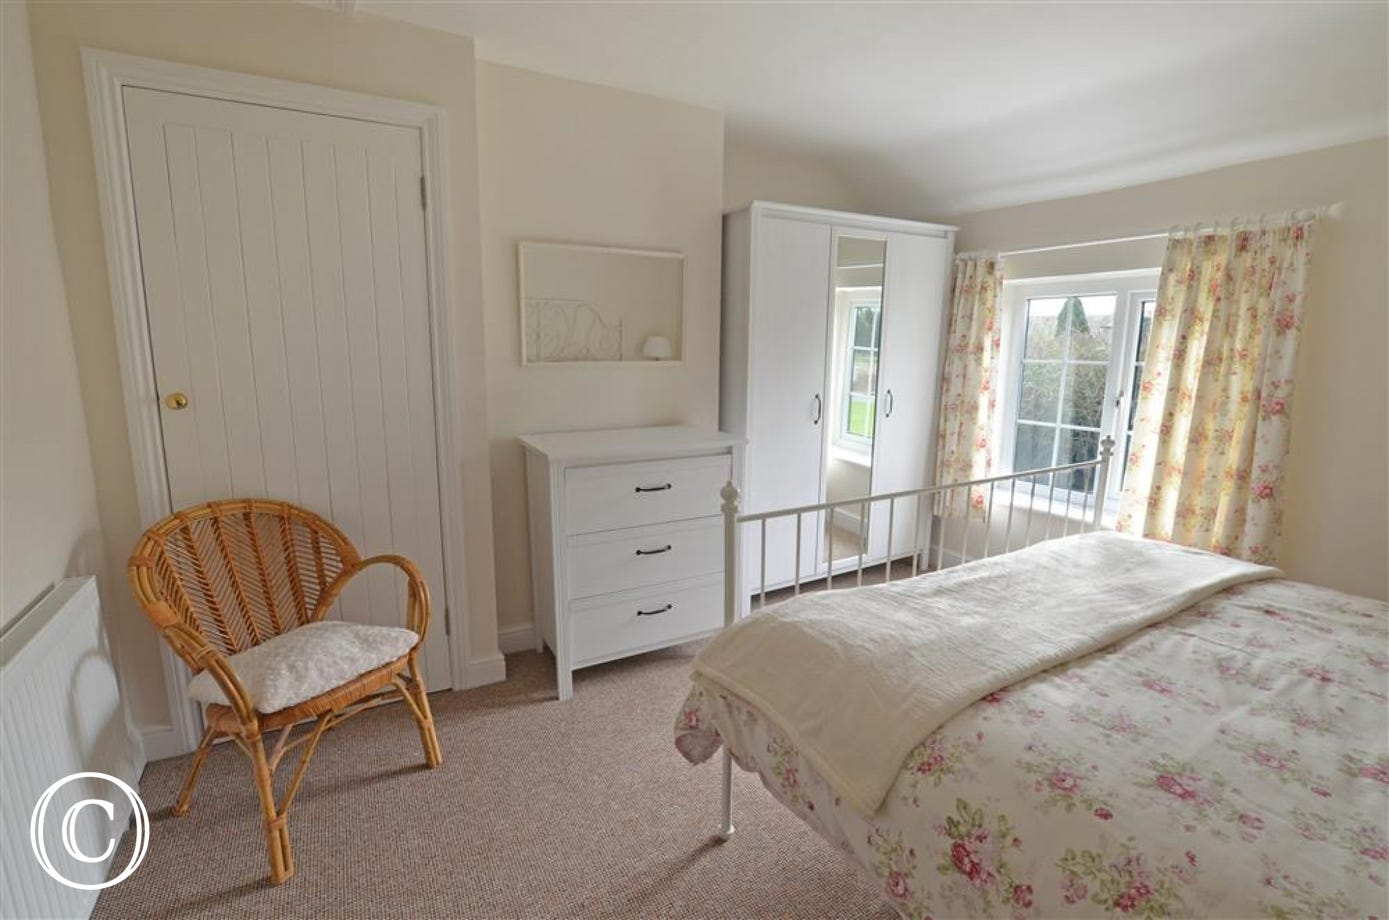 New white bedroom furniture enhances this light filled double room.